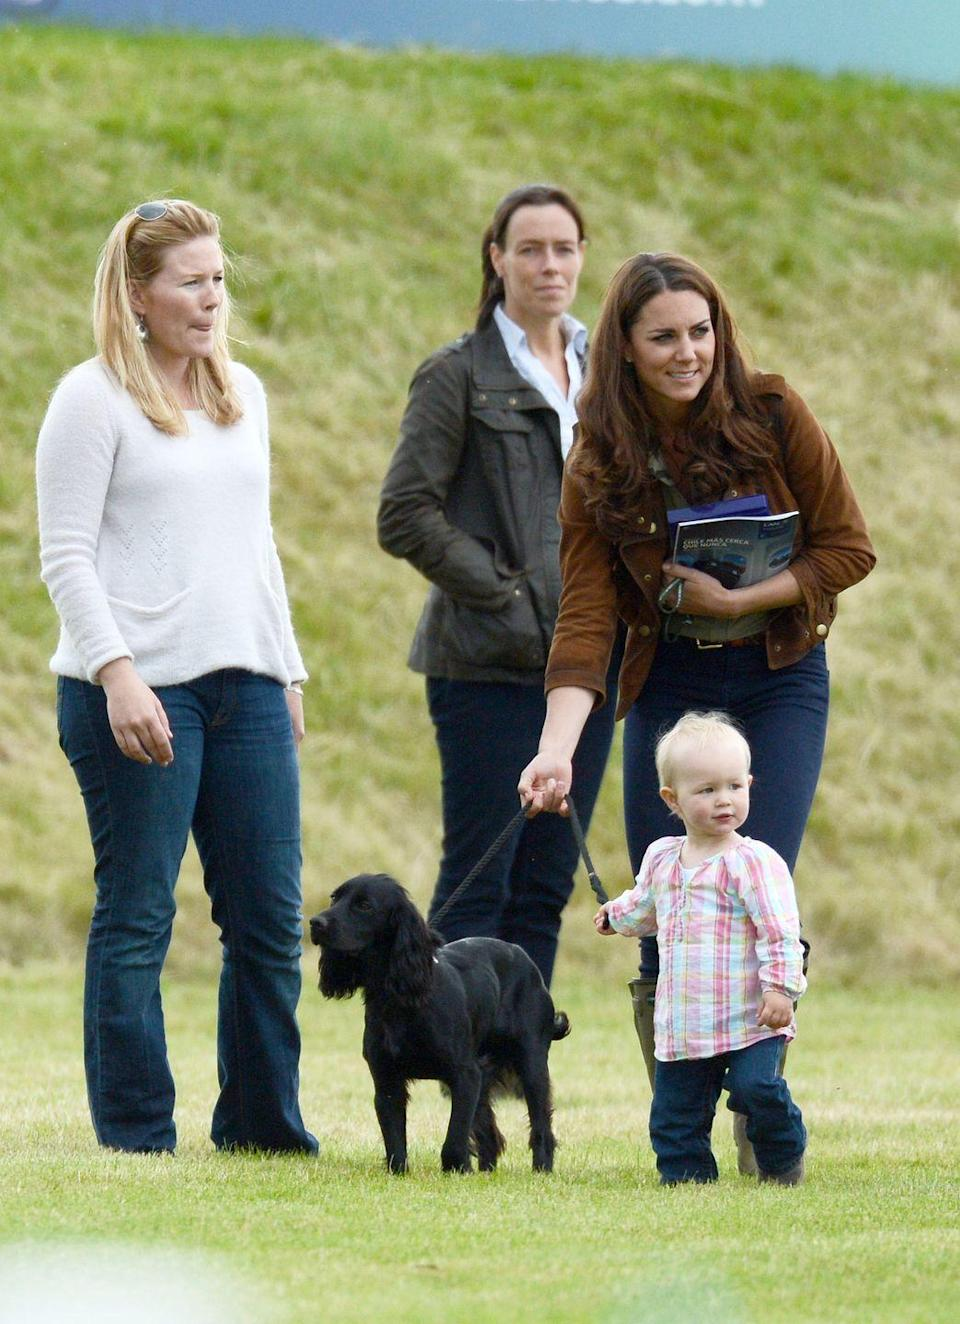 """<p>Prince William and Kate Middleton got Lupo, an adorable English Cocker Spaniel, in 2011—and for years, Lupo was a beloved member of the couple's growing family. Royal watchers were saddened to hear in November 2020 that the Cambridges' beloved dog had died. """"Very sadly last weekend our dear dog, Lupo, passed away. He has been at the heart of our family for the past nine years and we will miss him so much,"""" the Duke and Duchess wrote in a post on <a href=""""https://www.instagram.com/p/CH5l8xeF219/"""" rel=""""nofollow noopener"""" target=""""_blank"""" data-ylk=""""slk:Instagram"""" class=""""link rapid-noclick-resp"""">Instagram</a>.</p>"""